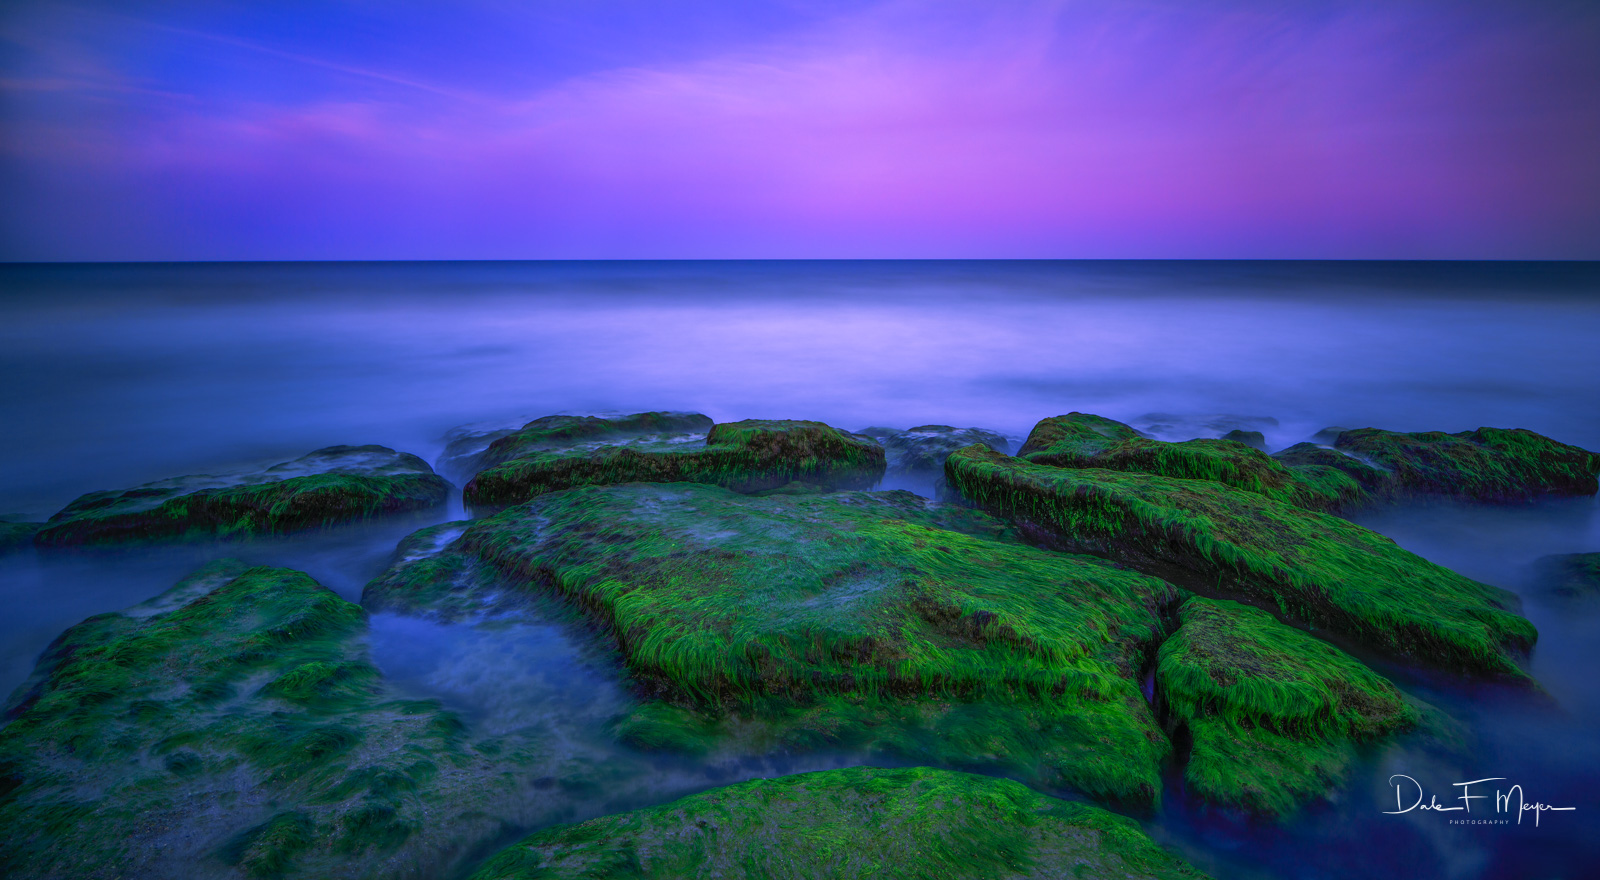 coastal, Coastal Photos of the Eastern Seabord Gallerie, Coquina Rocks, Evening Light, long exposure, North Carolina, photo